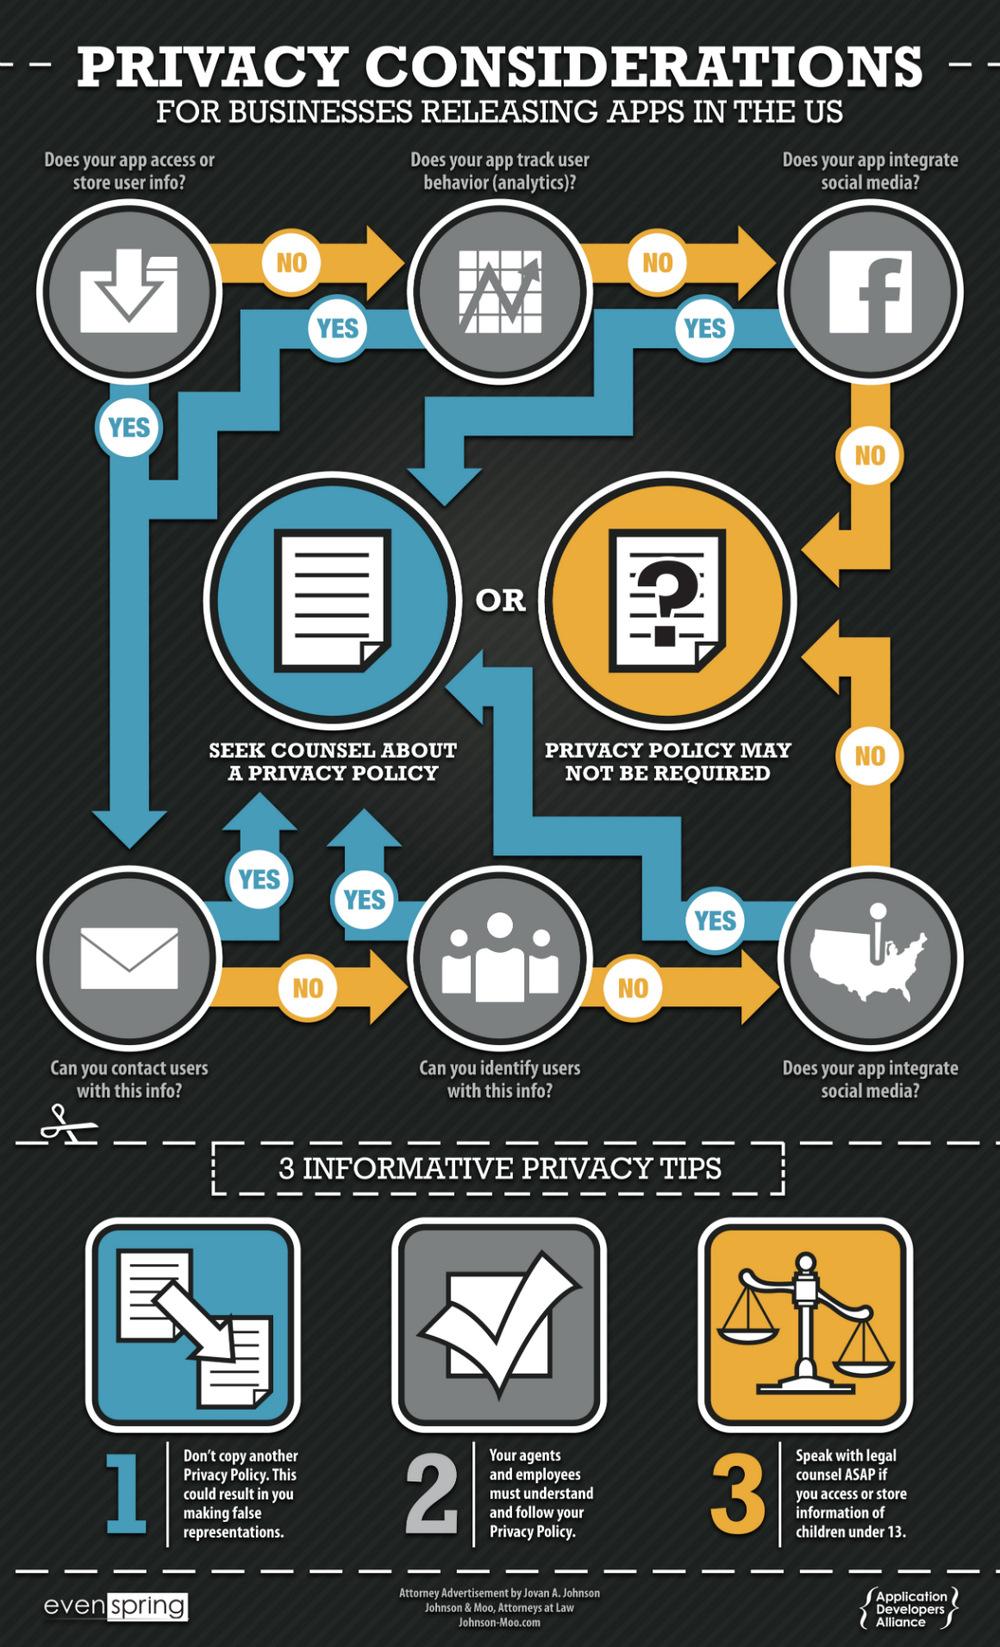 Our app privacy infographic provides both tips and a flow chart to help guide you on app privacy laws.